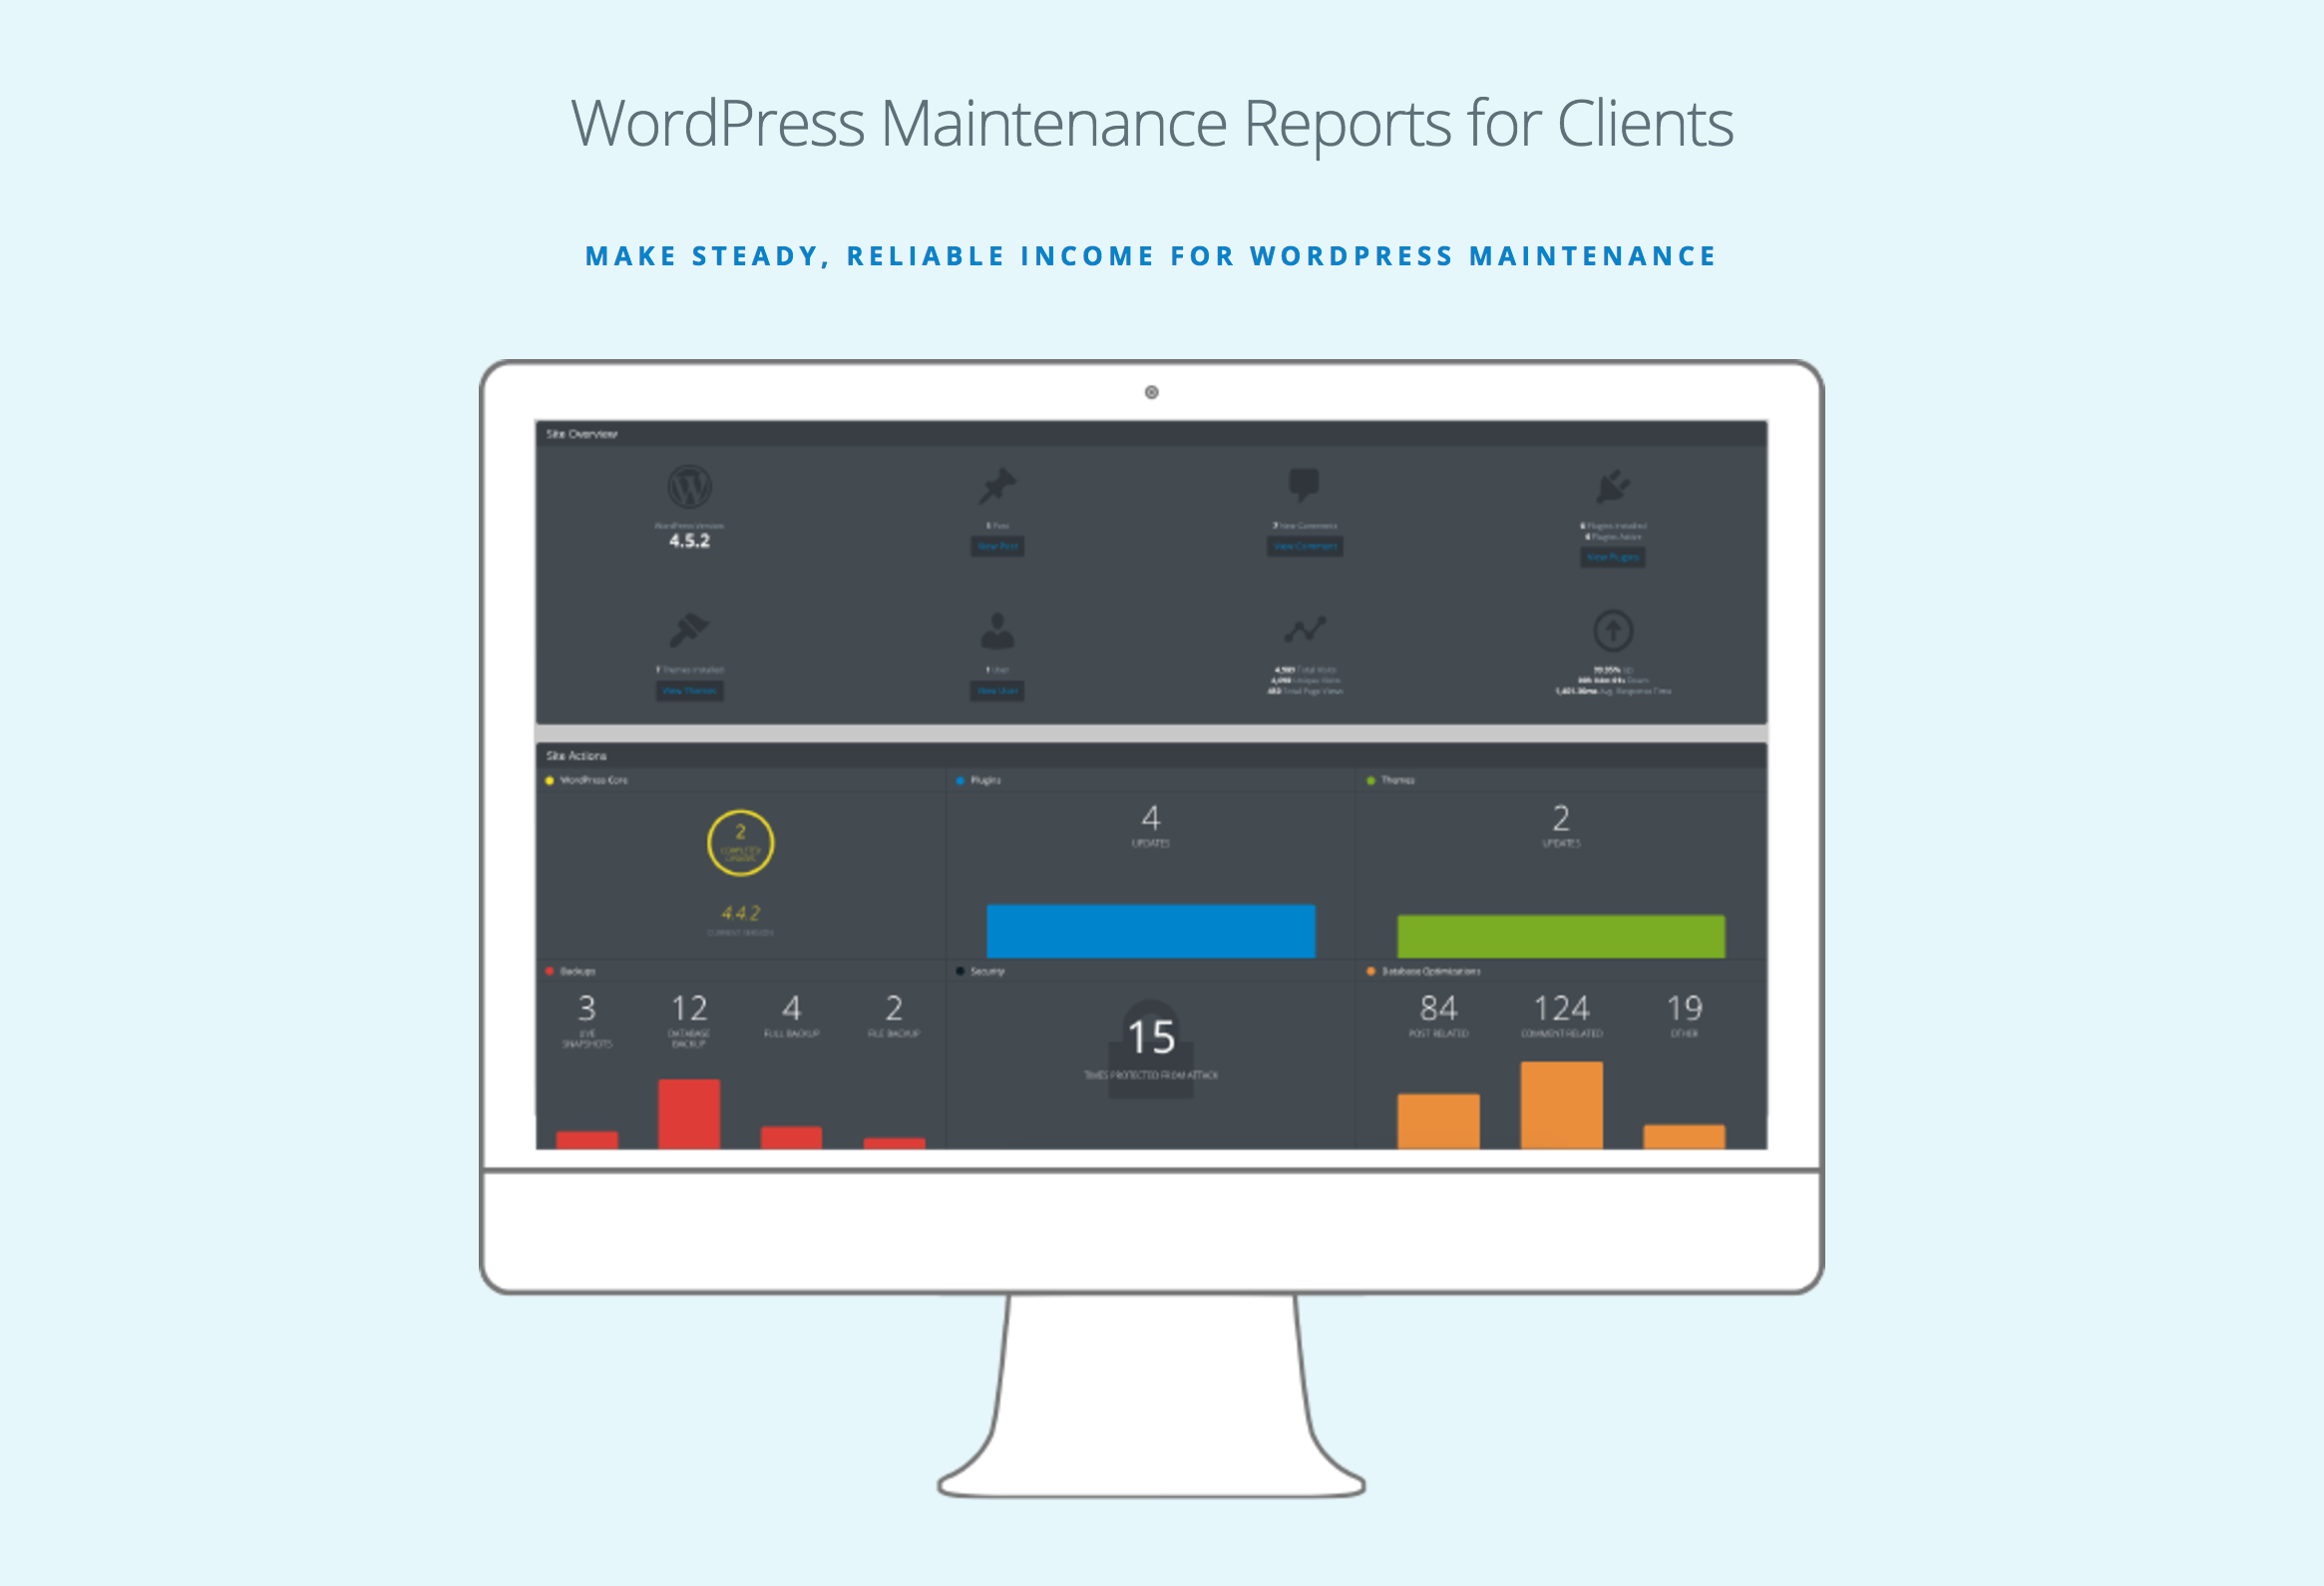 Send clients interactive WordPress maintenance reports that summarize update actions and other key site metrics (Pro)